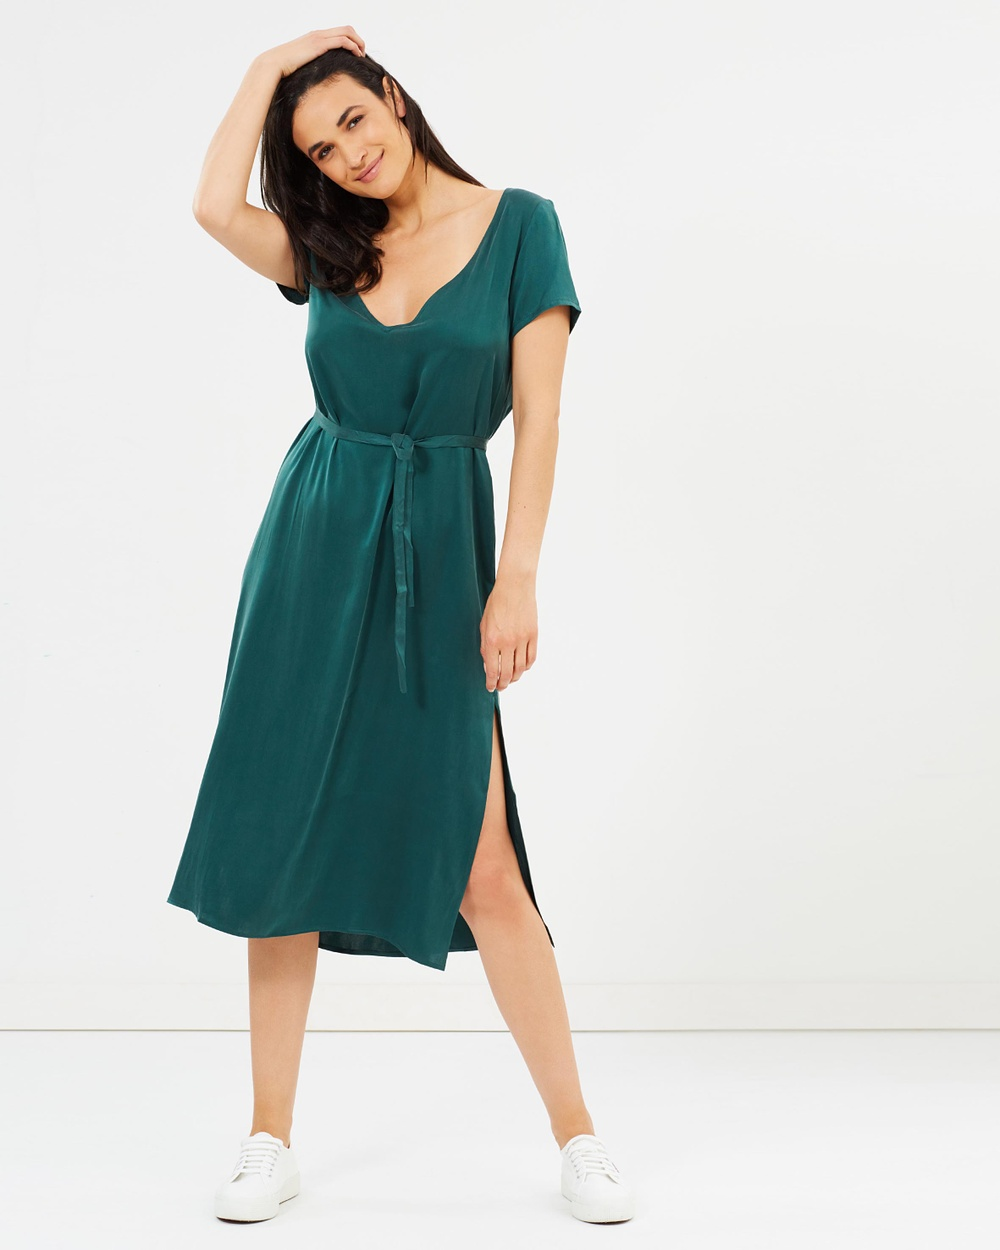 Silk Laundry Reversible T Shirt Dress Dresses Emerald Reversible T-Shirt Dress